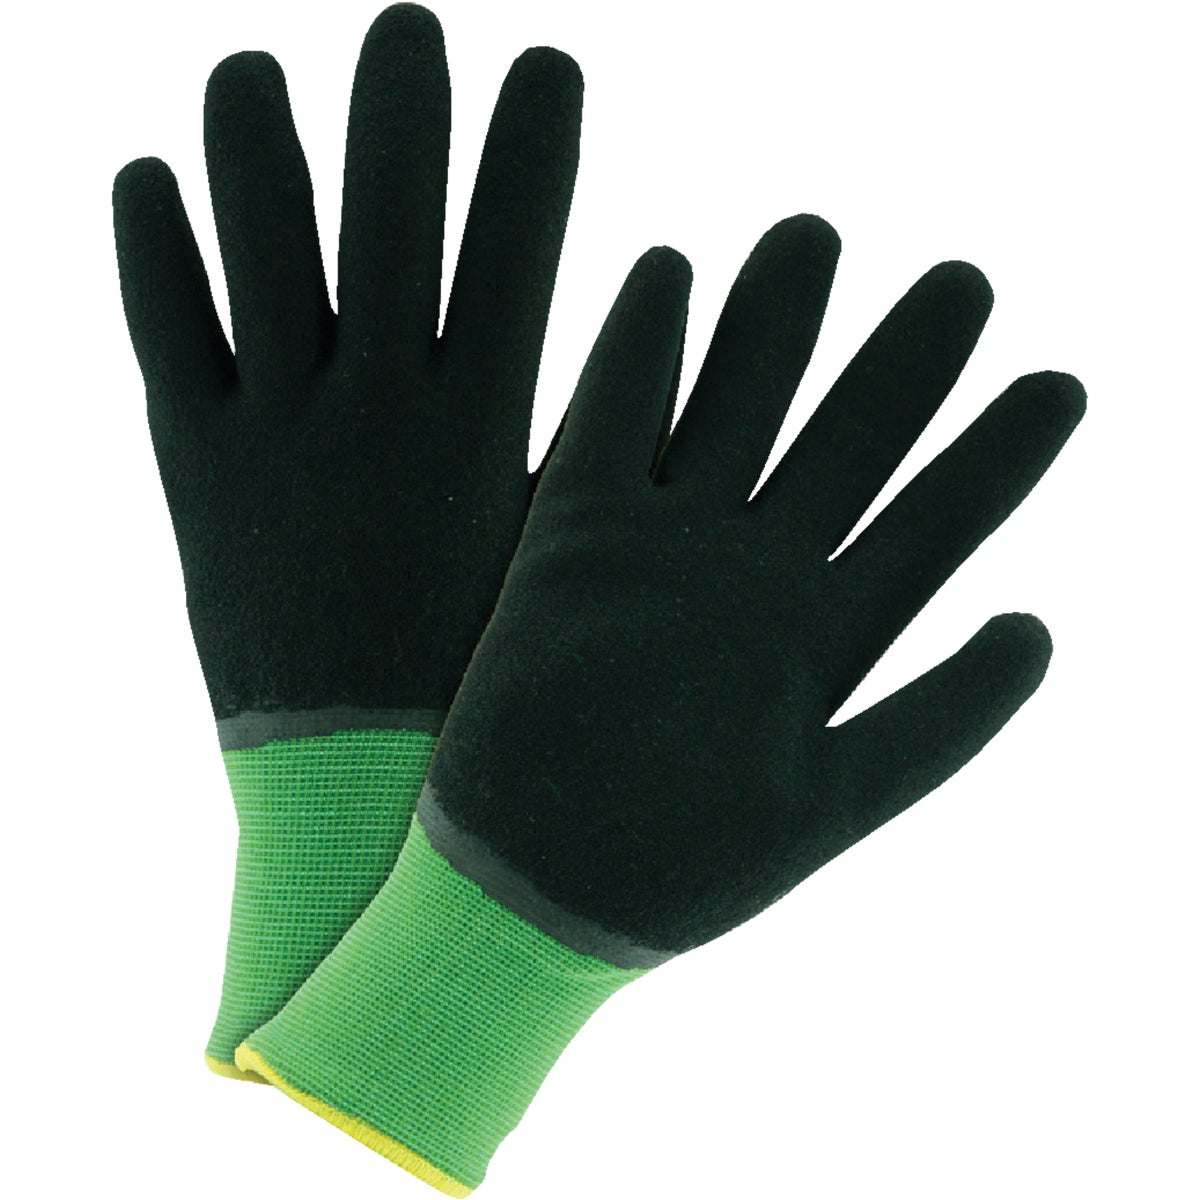 LINED LATEX DIPPED GLOVE - JD93058/XL by West Chester Incom